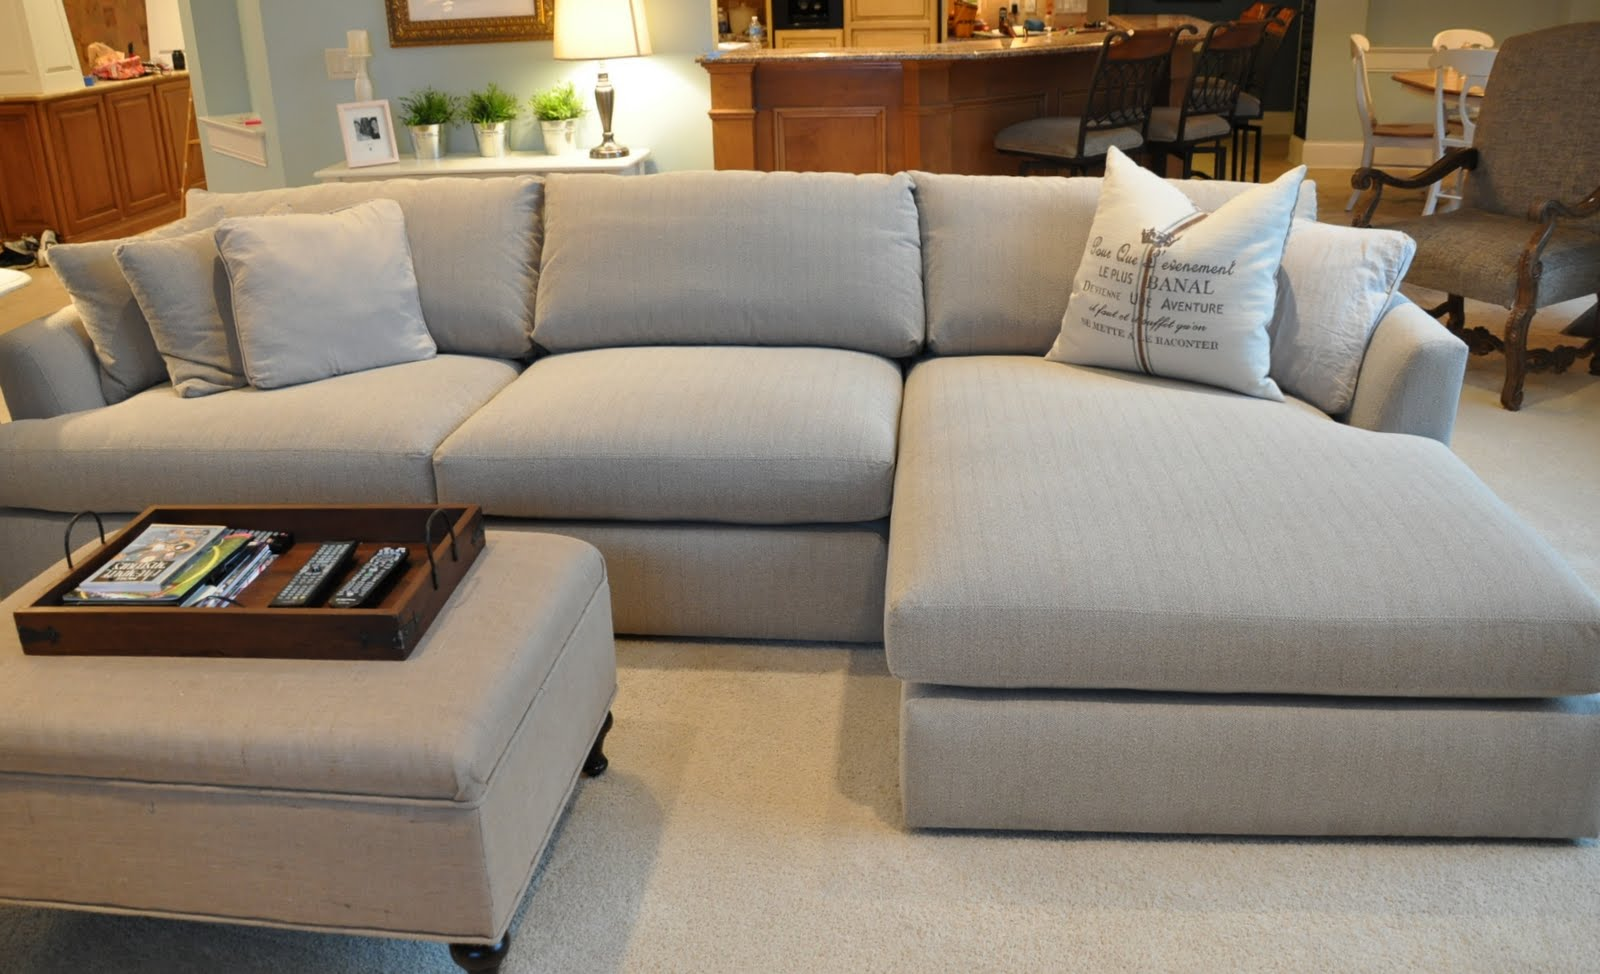 The Sectional Has Landed Evolution Of Style